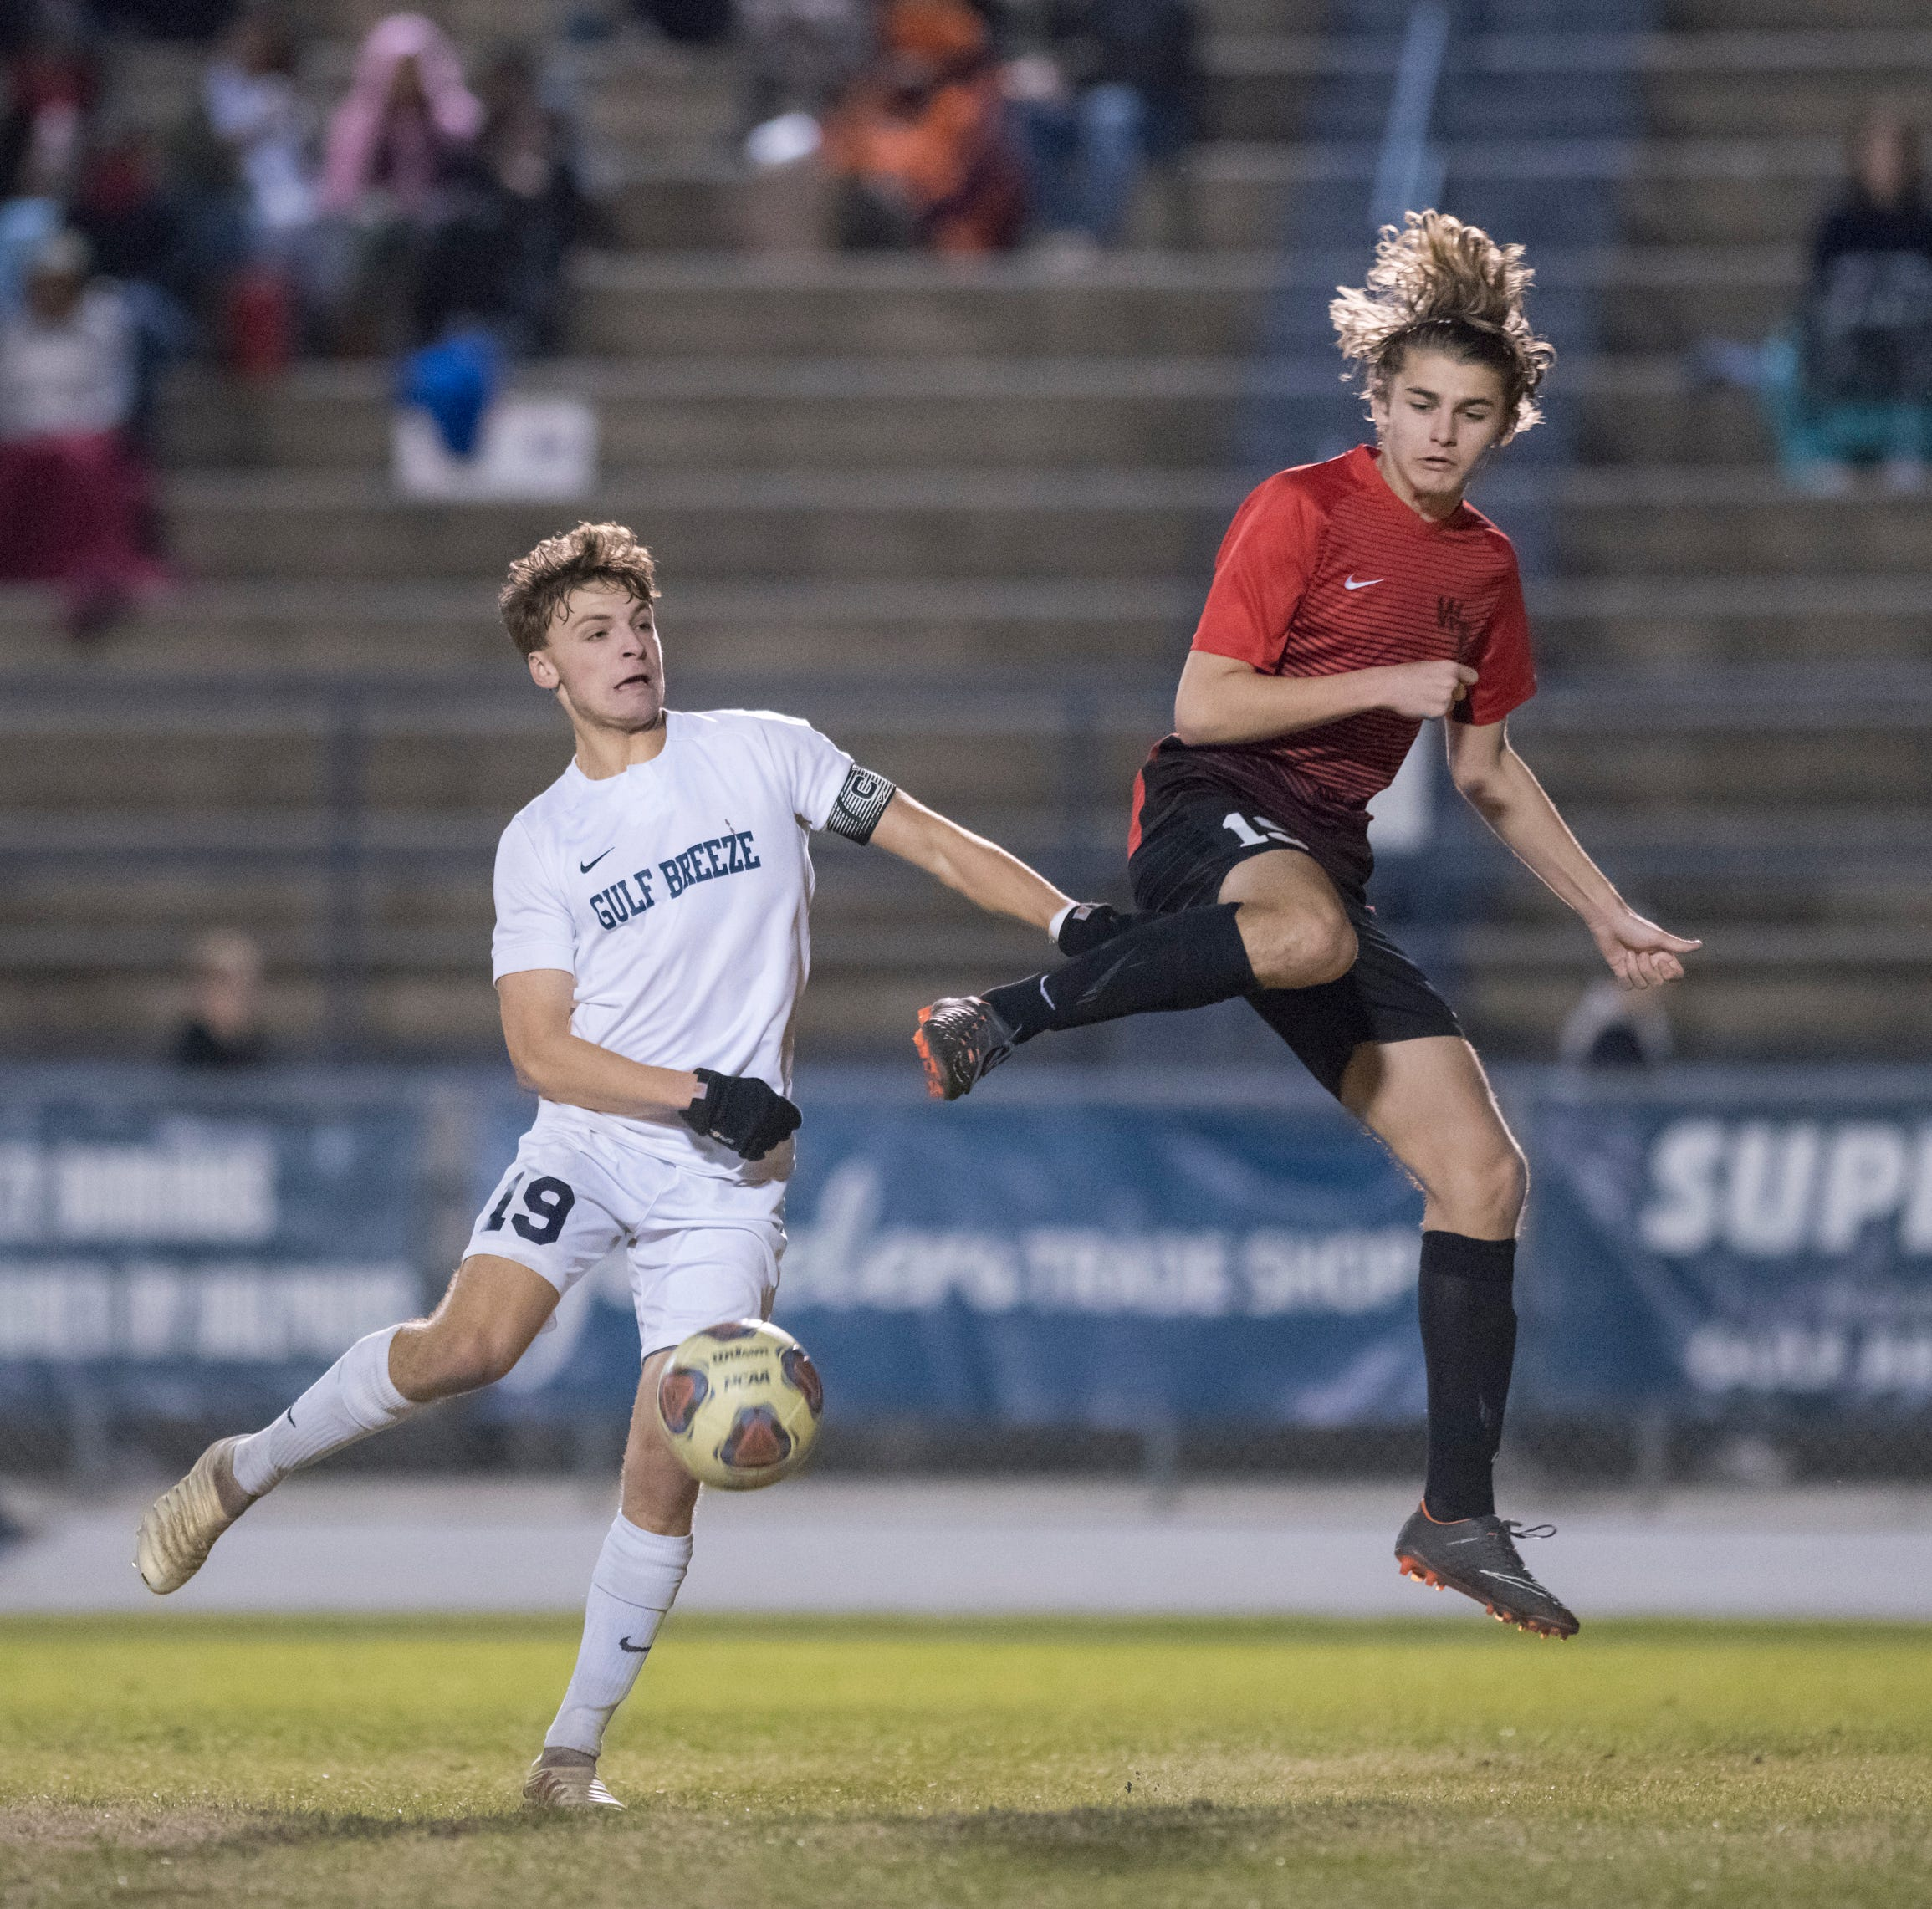 VOTE: All-Area performances from high school soccer